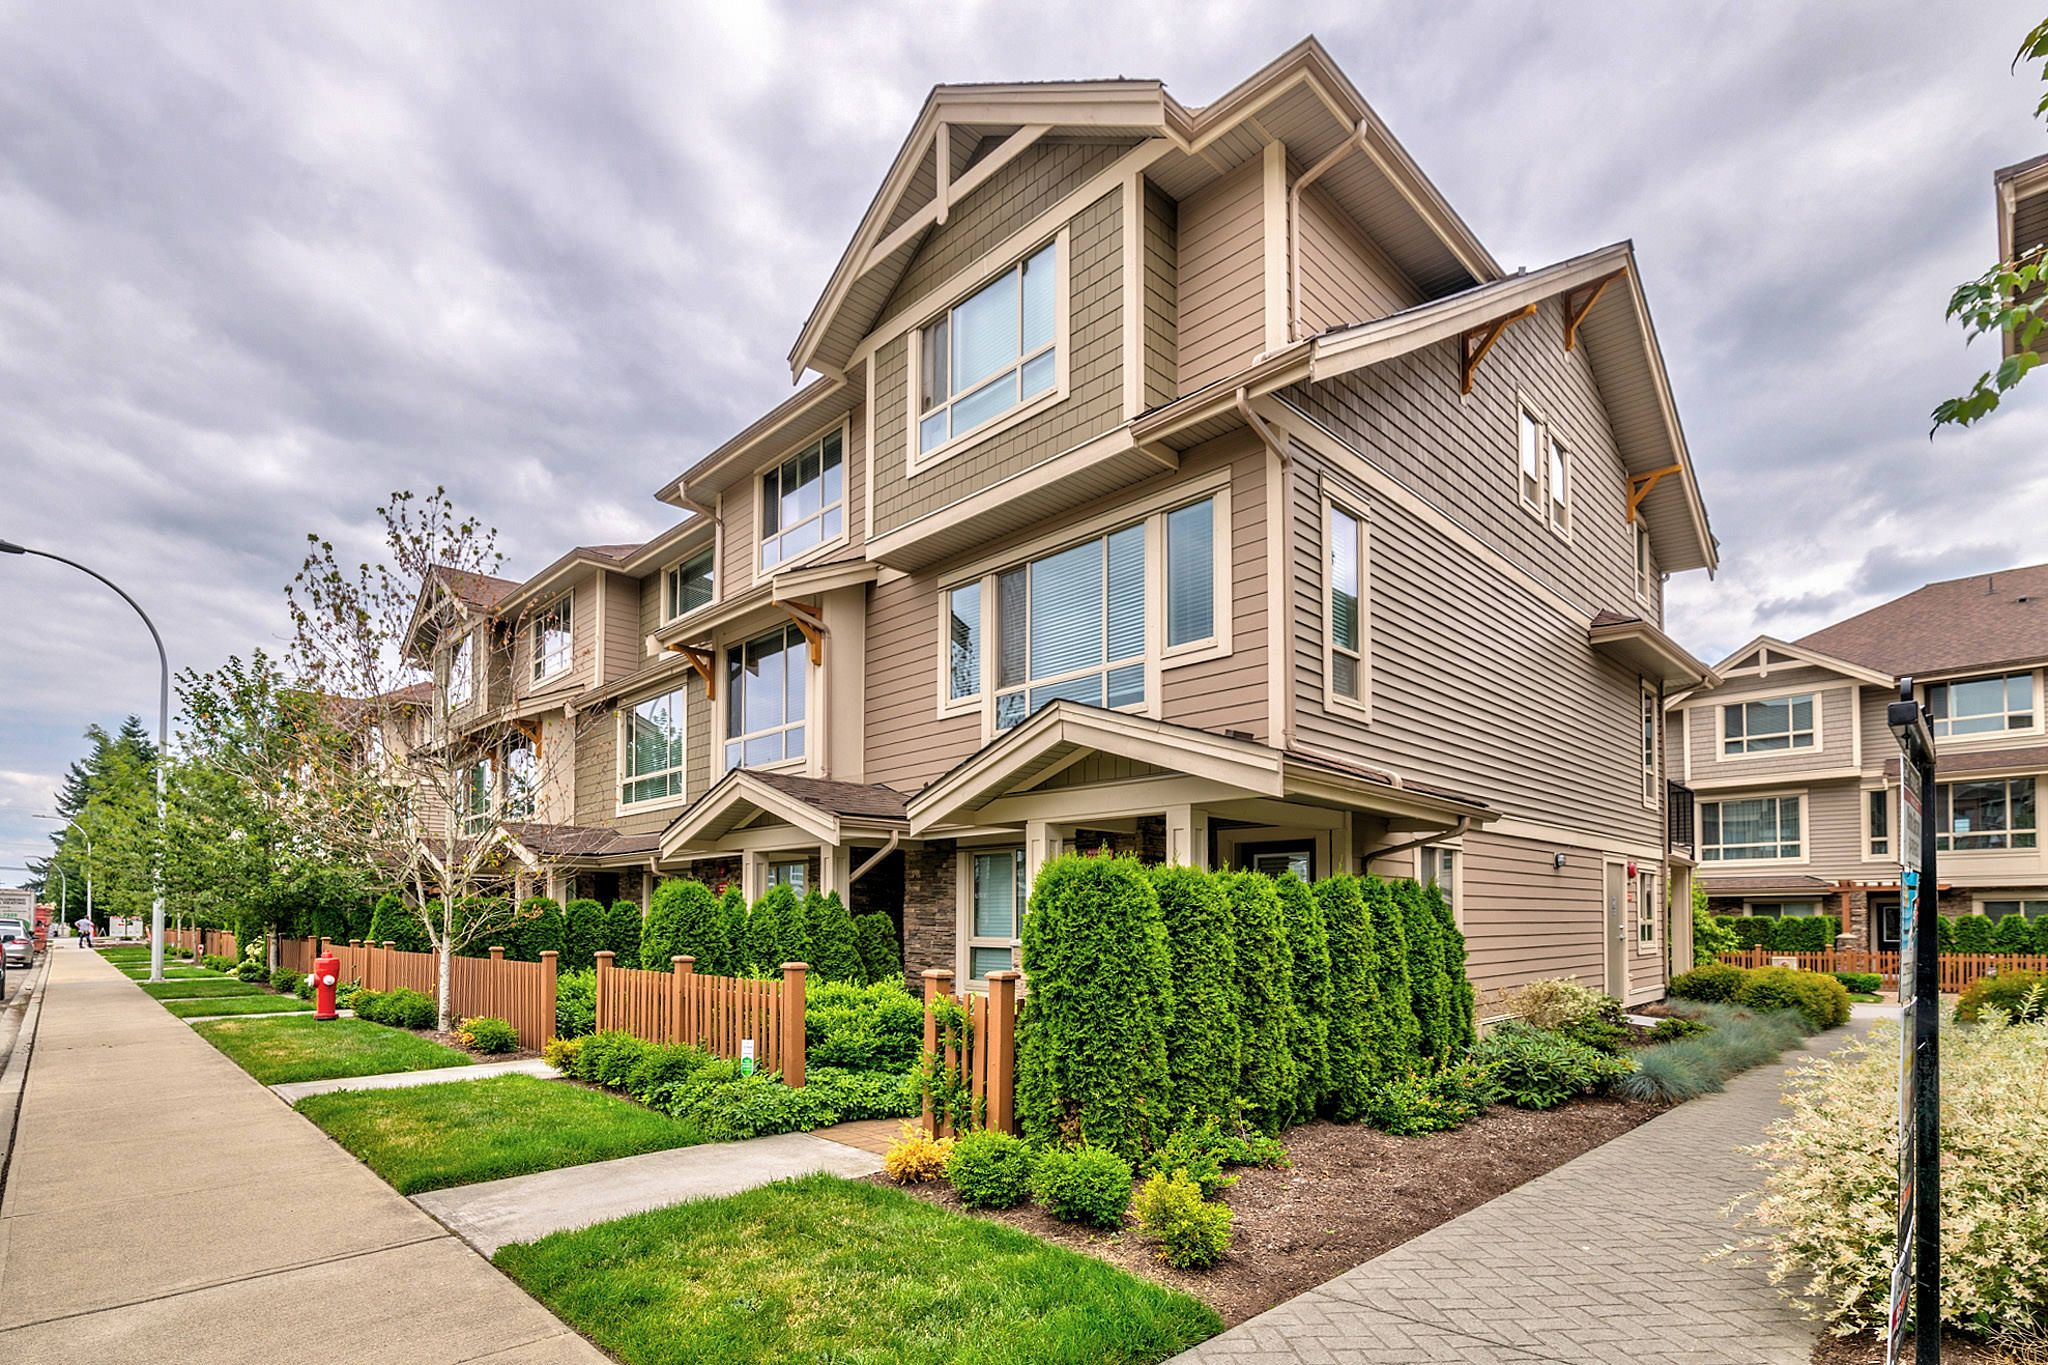 Photo 24: Photos: 10 19742 55A Street in Langley: Langley City Townhouse for sale : MLS®# R2388093